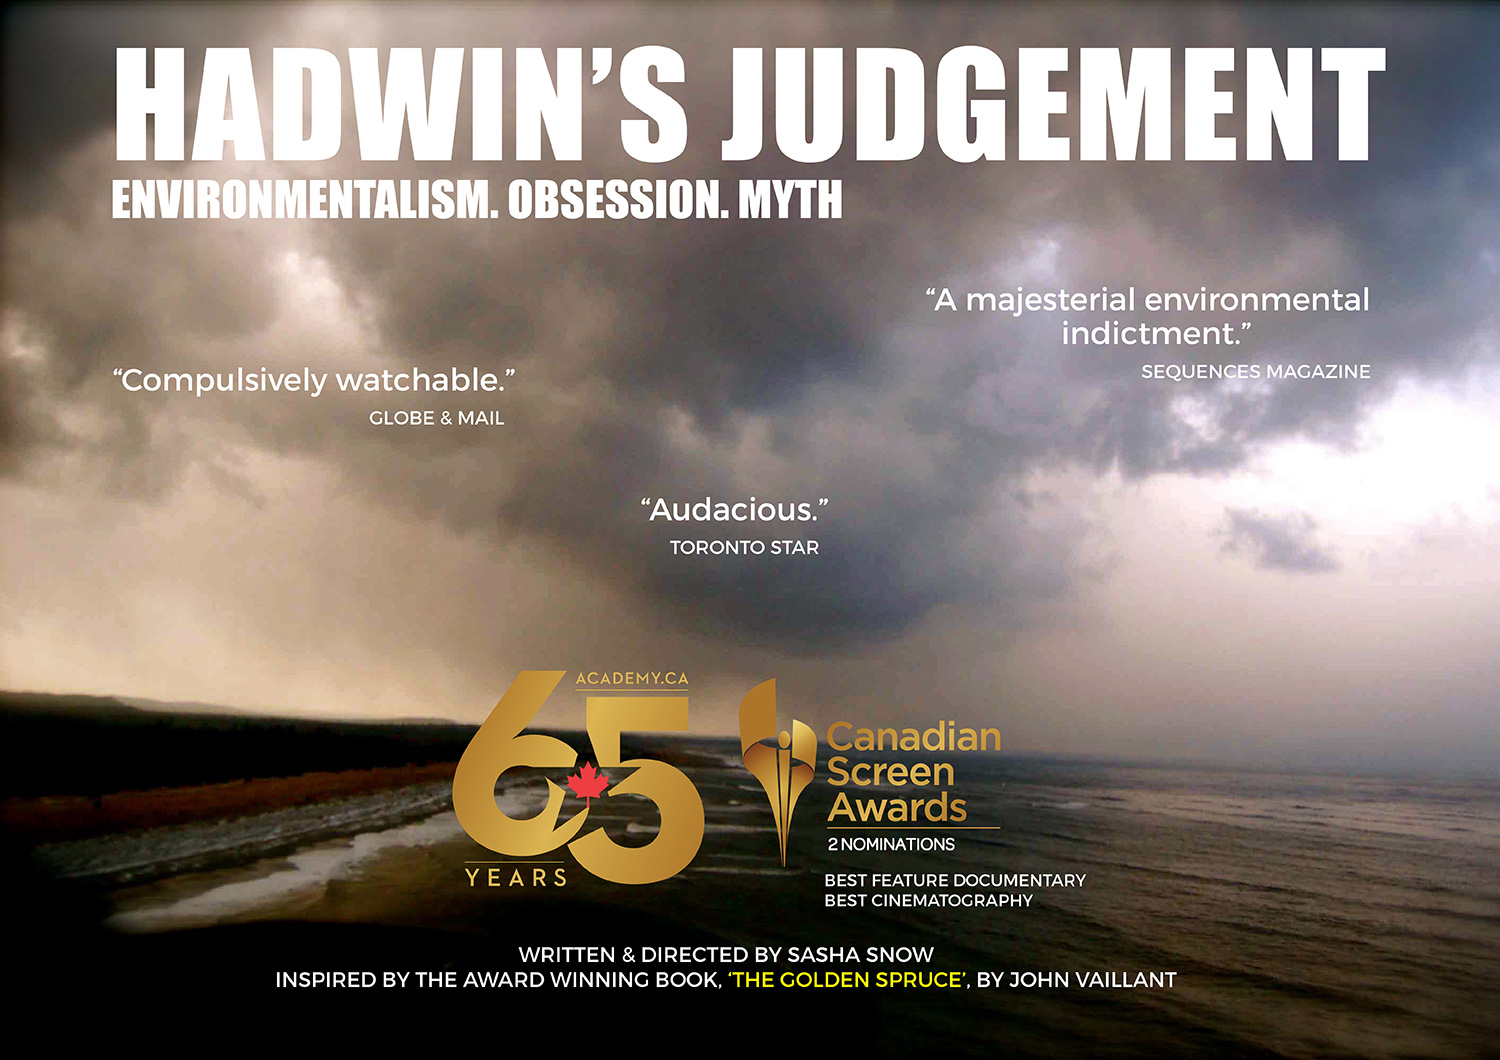 HADWIN'S JUDGEMENT AWRDS.jpg